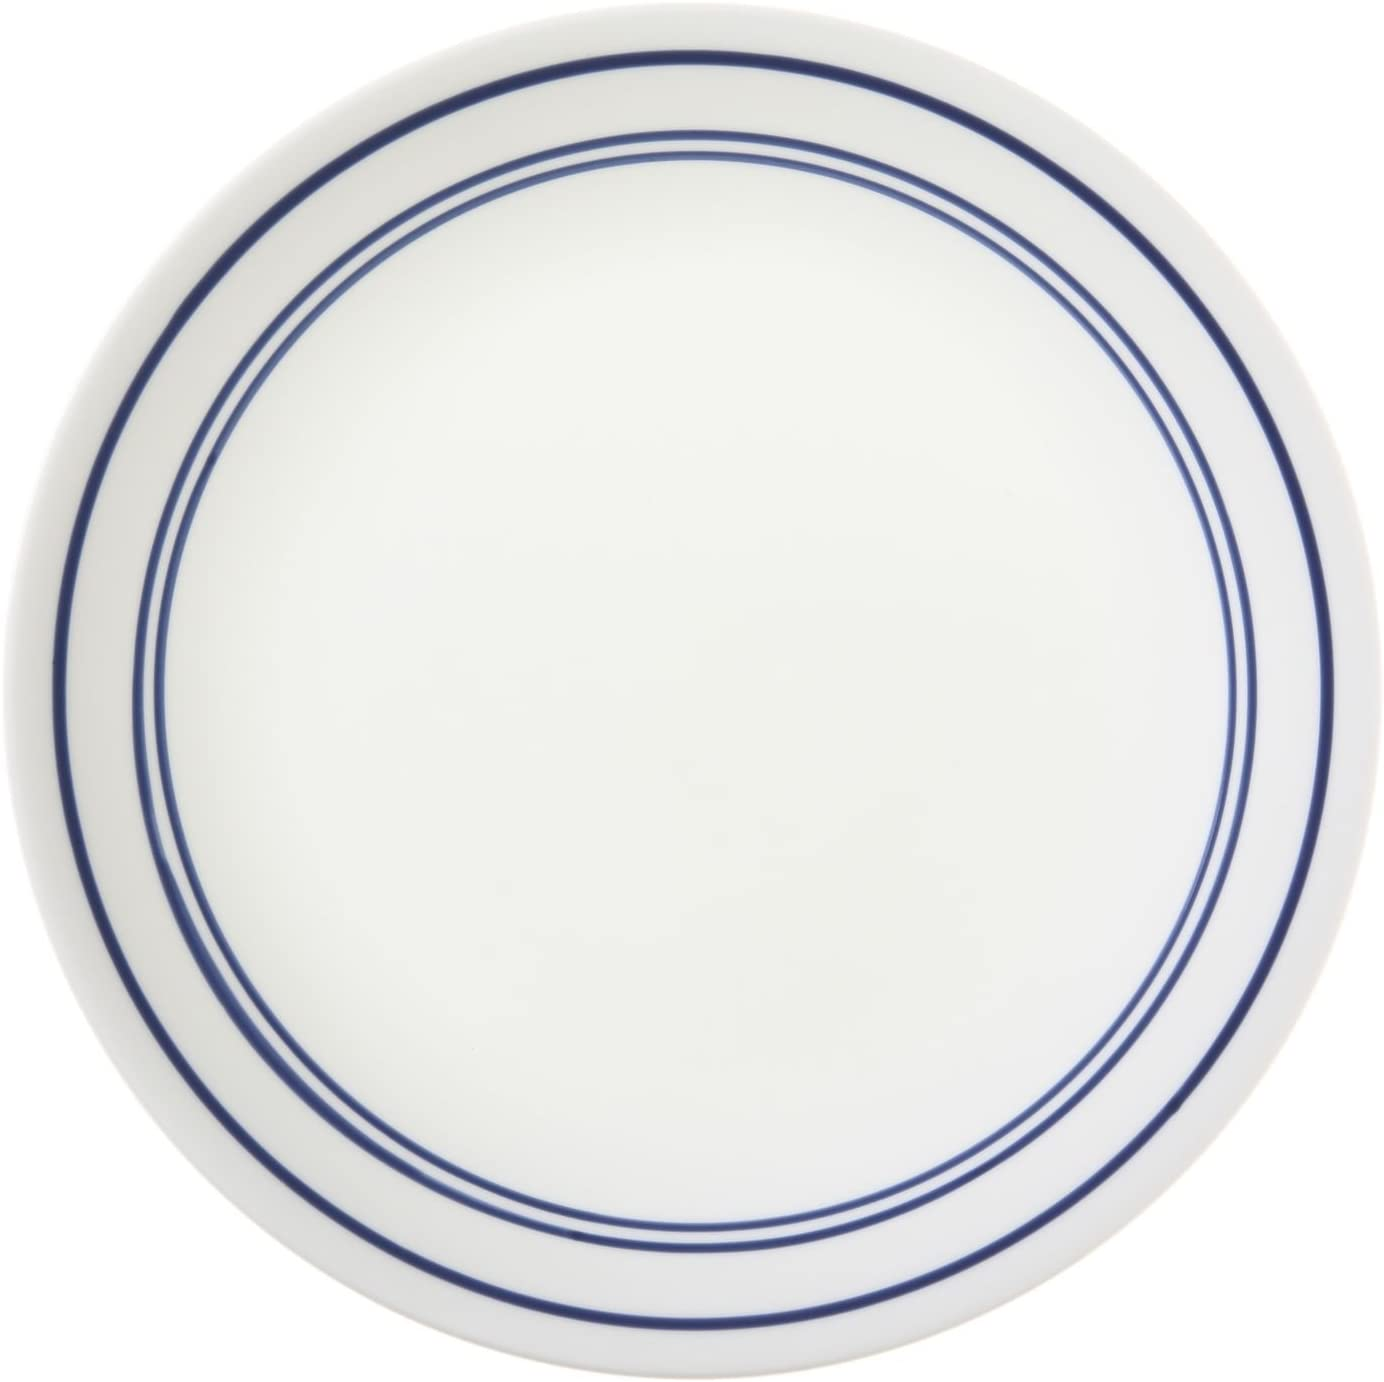 "Corelle Livingware Classic Café Blue 8.5"" Lunch Plate (Set of 8)"